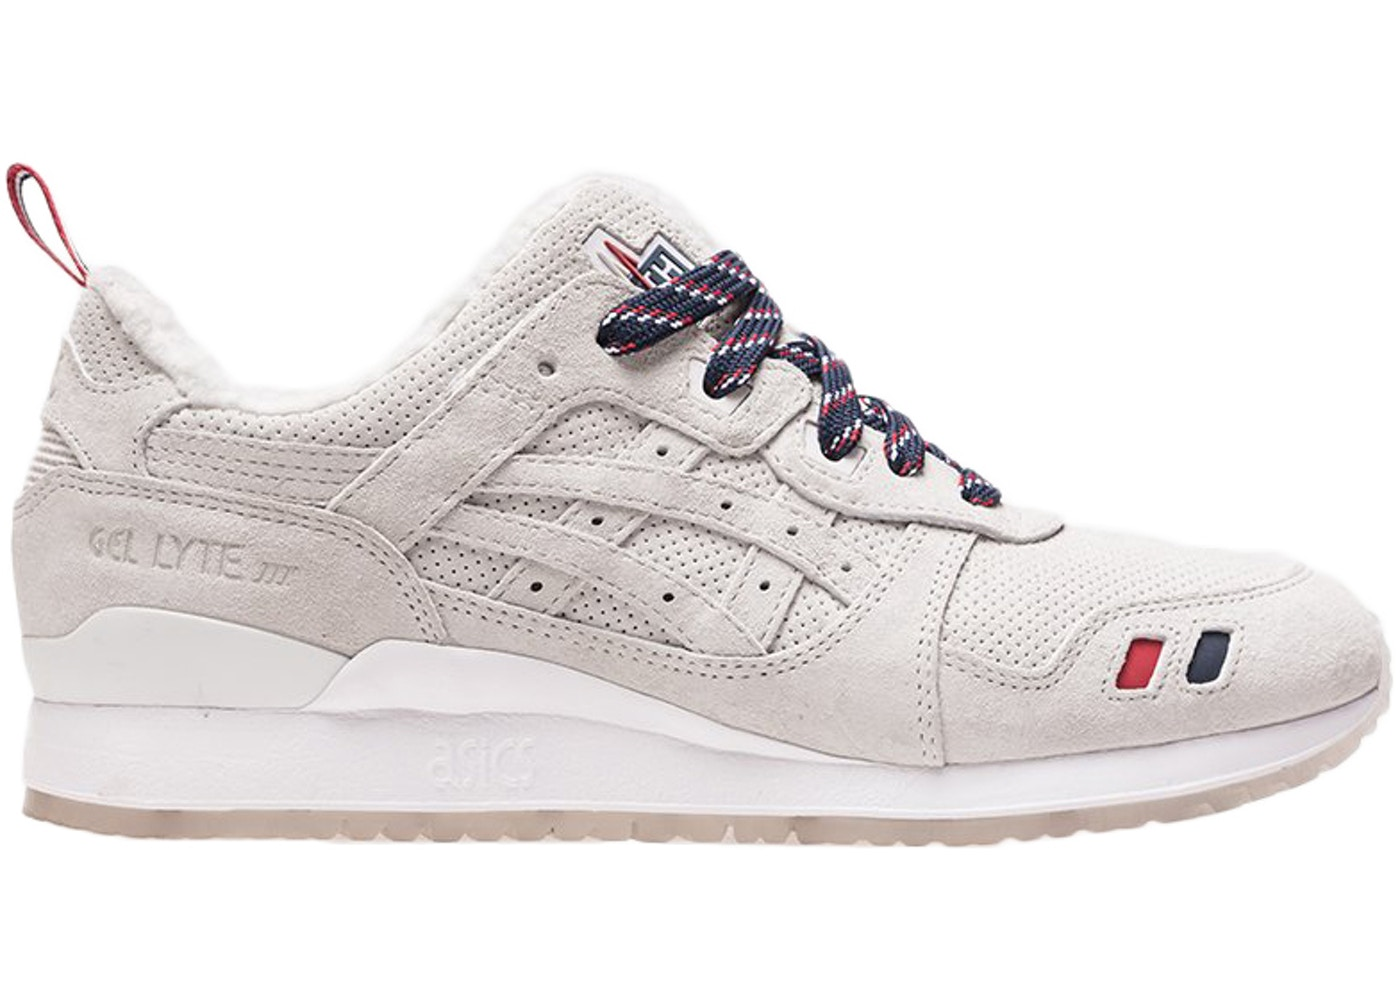 save up to 80% closer at reputable site ASICS Gel-Lyte III Kith x Moncler Cream